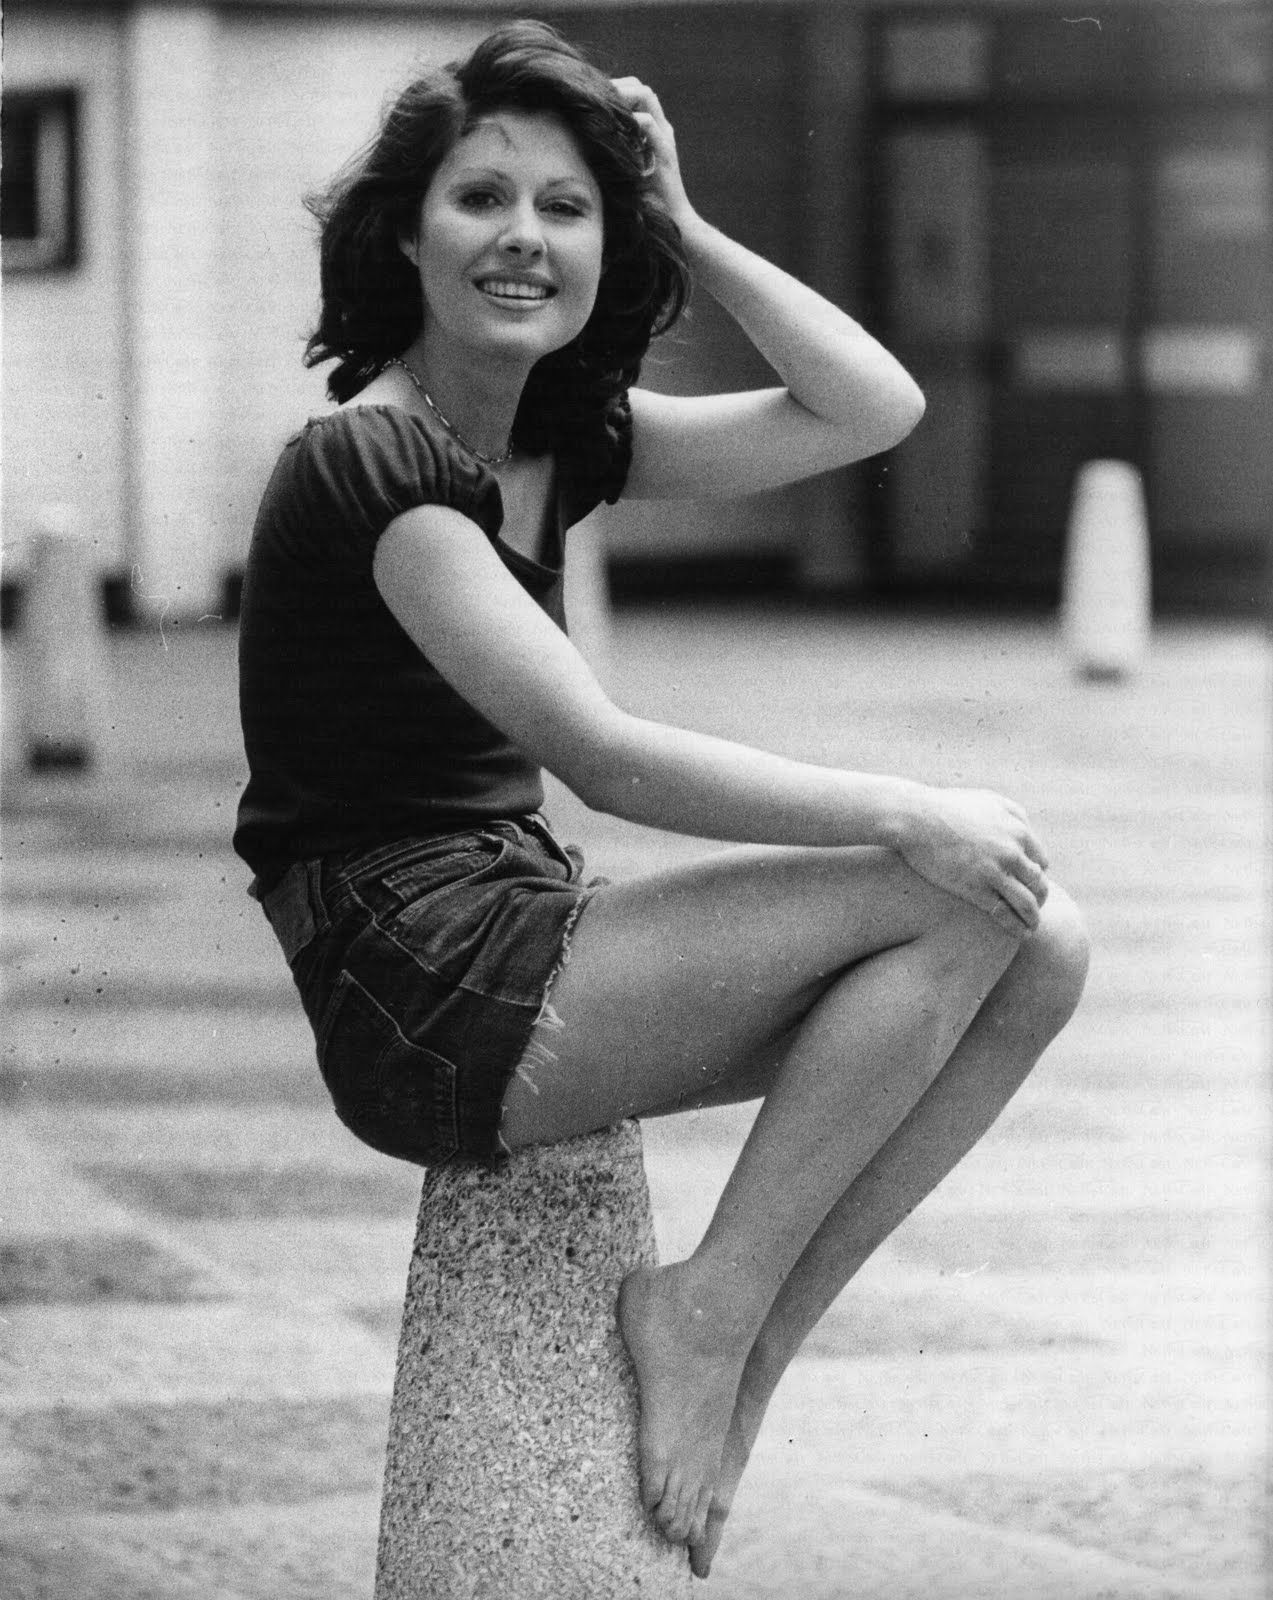 Amy Hill born May 9, 1953 (age 65) recommend